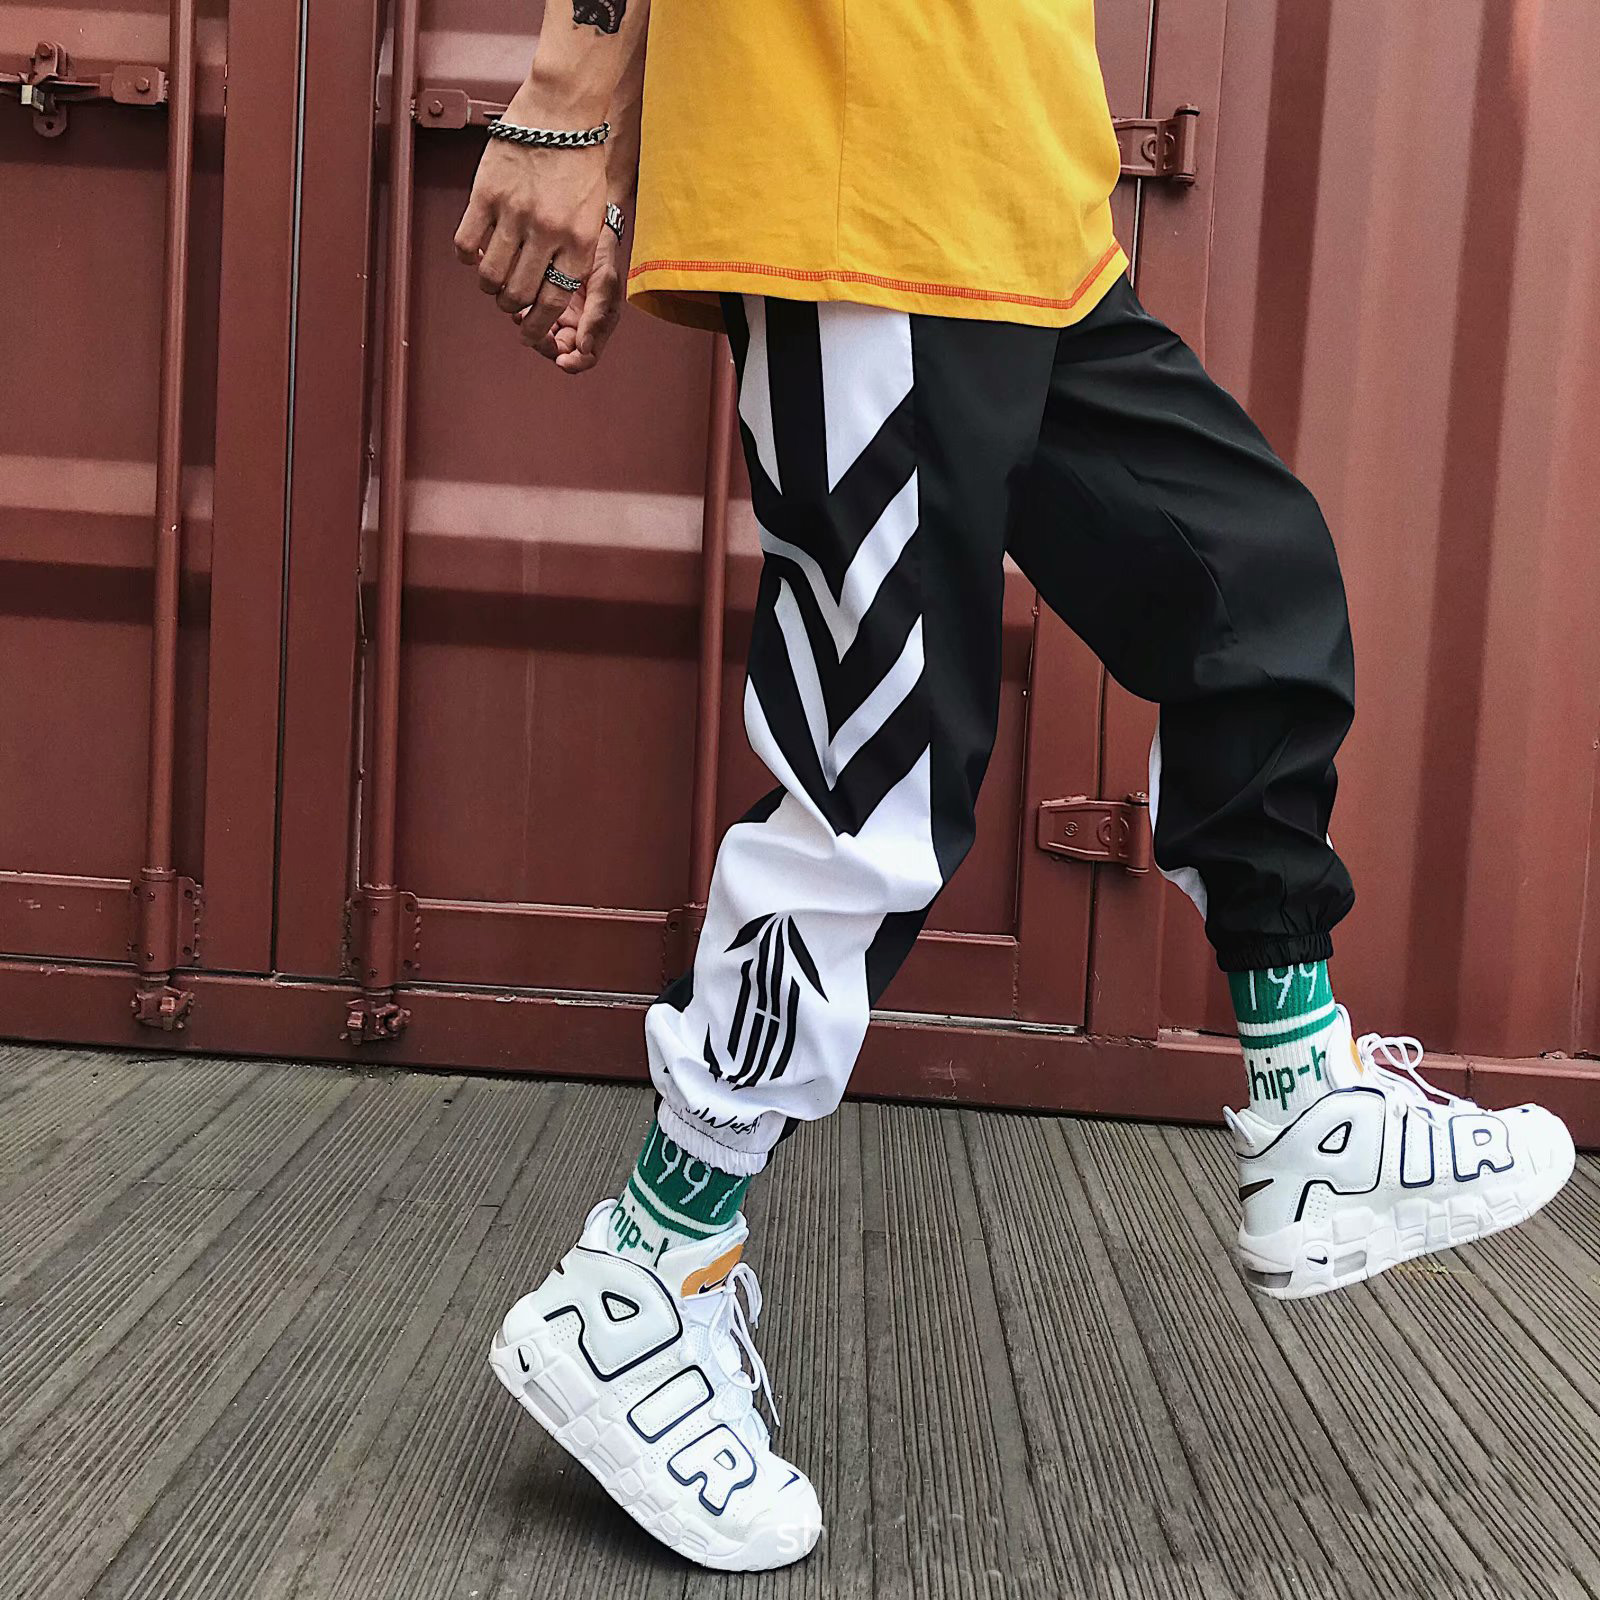 Striped Patchwork Harem Pants Mens 2019 Hip Hop Printed Color Block Casual Joggers Sweatpants Trousers Male Streetwear in Harem Pants from Men 39 s Clothing